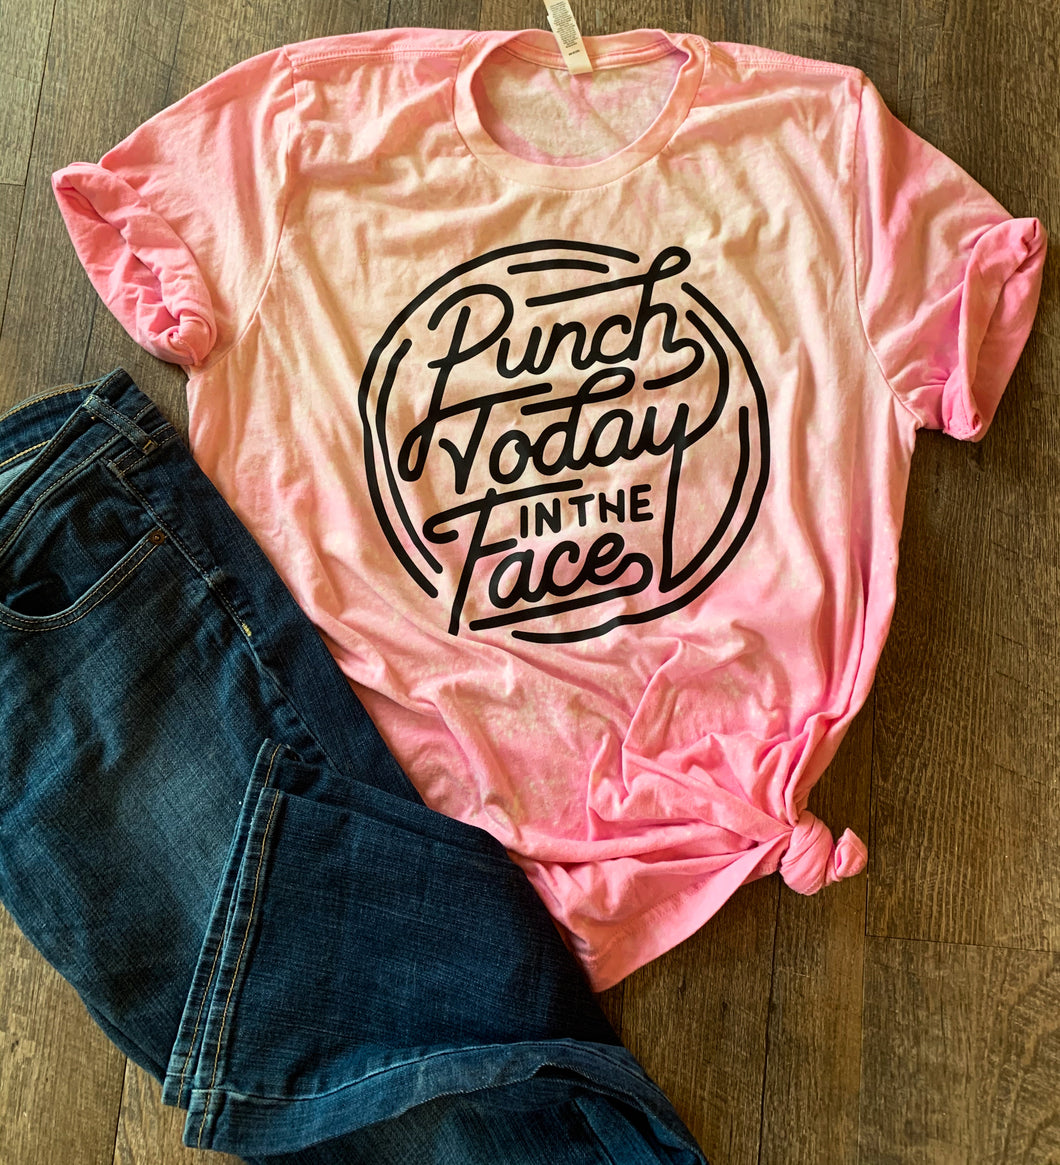 Punch today in the face pink bleached out funny graphic tee long sleeve crew or hoodie - Mavictoria Designs Hot Press Express